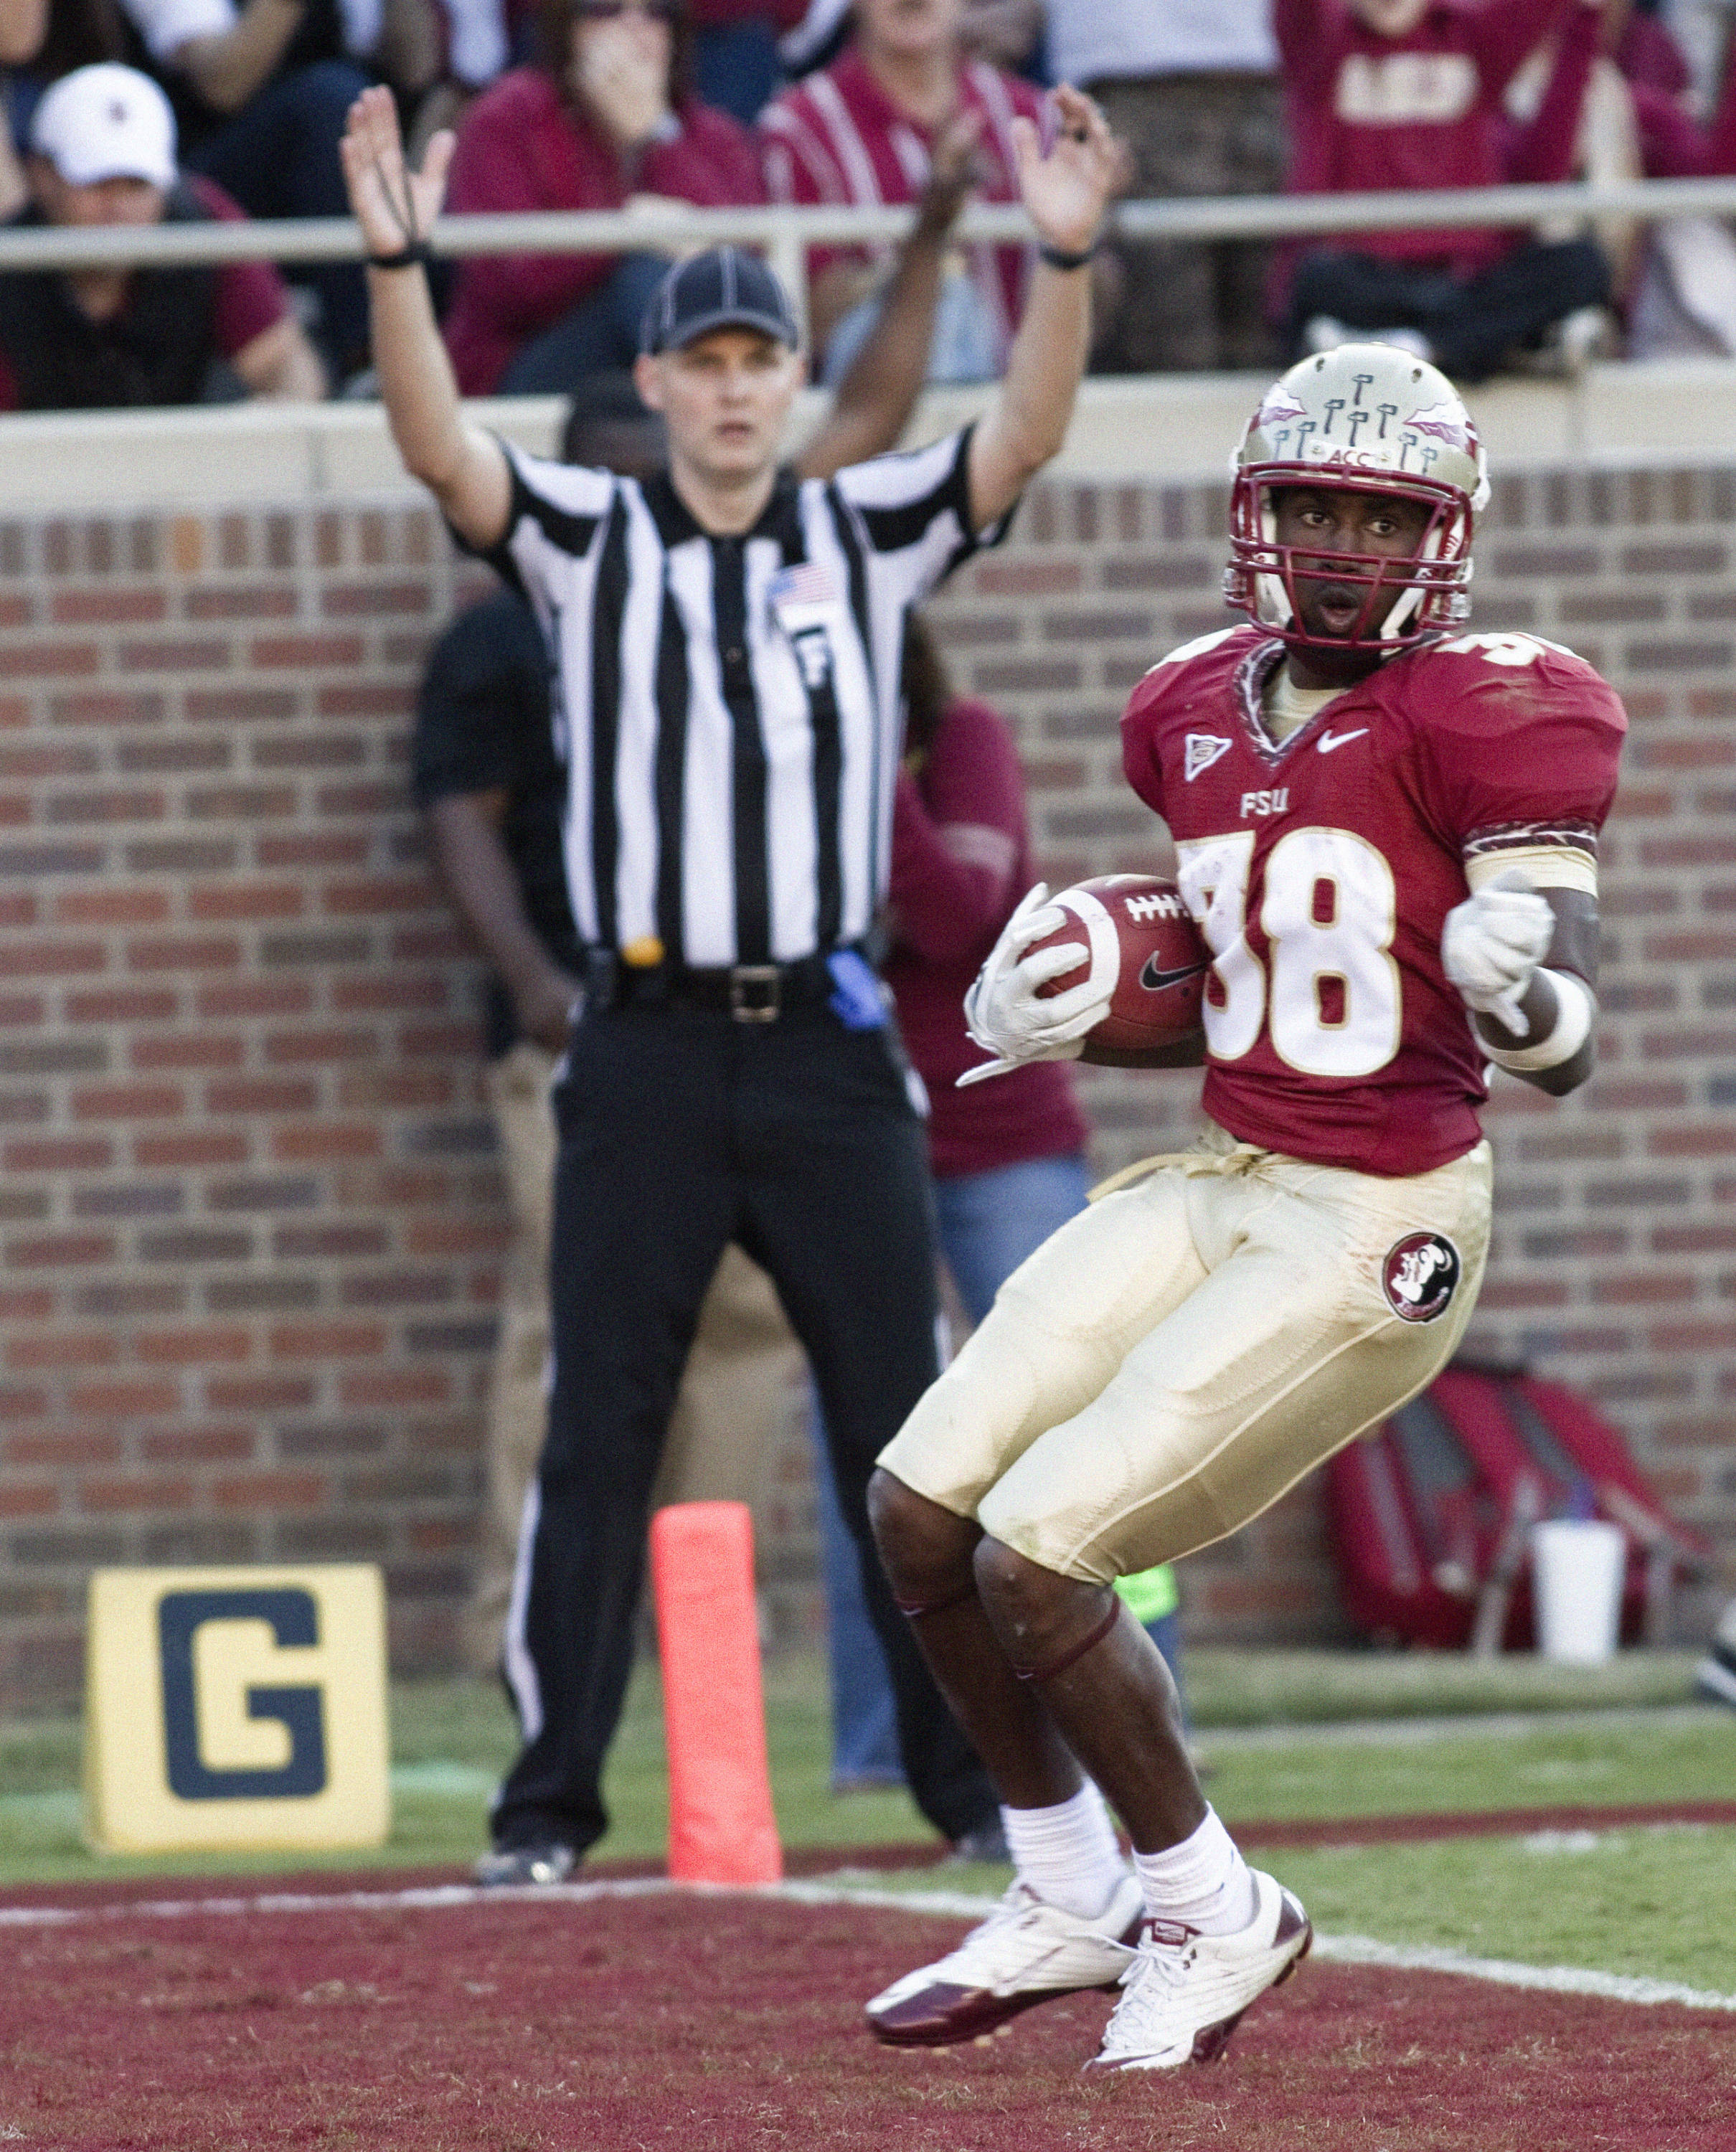 Jermaine Thomas (38) scoring. FSU vs Maryland 10/22/1111